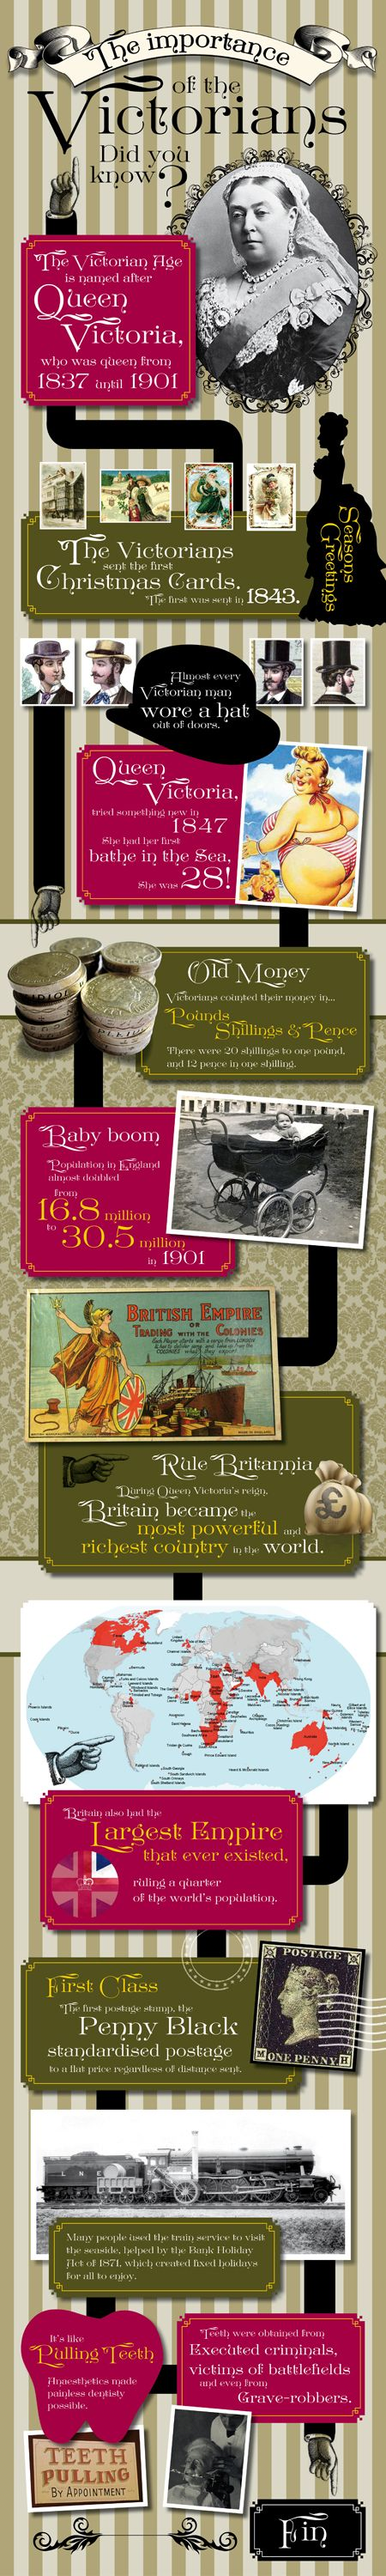 Victorian History Infographic #Victorian #History #Infographic